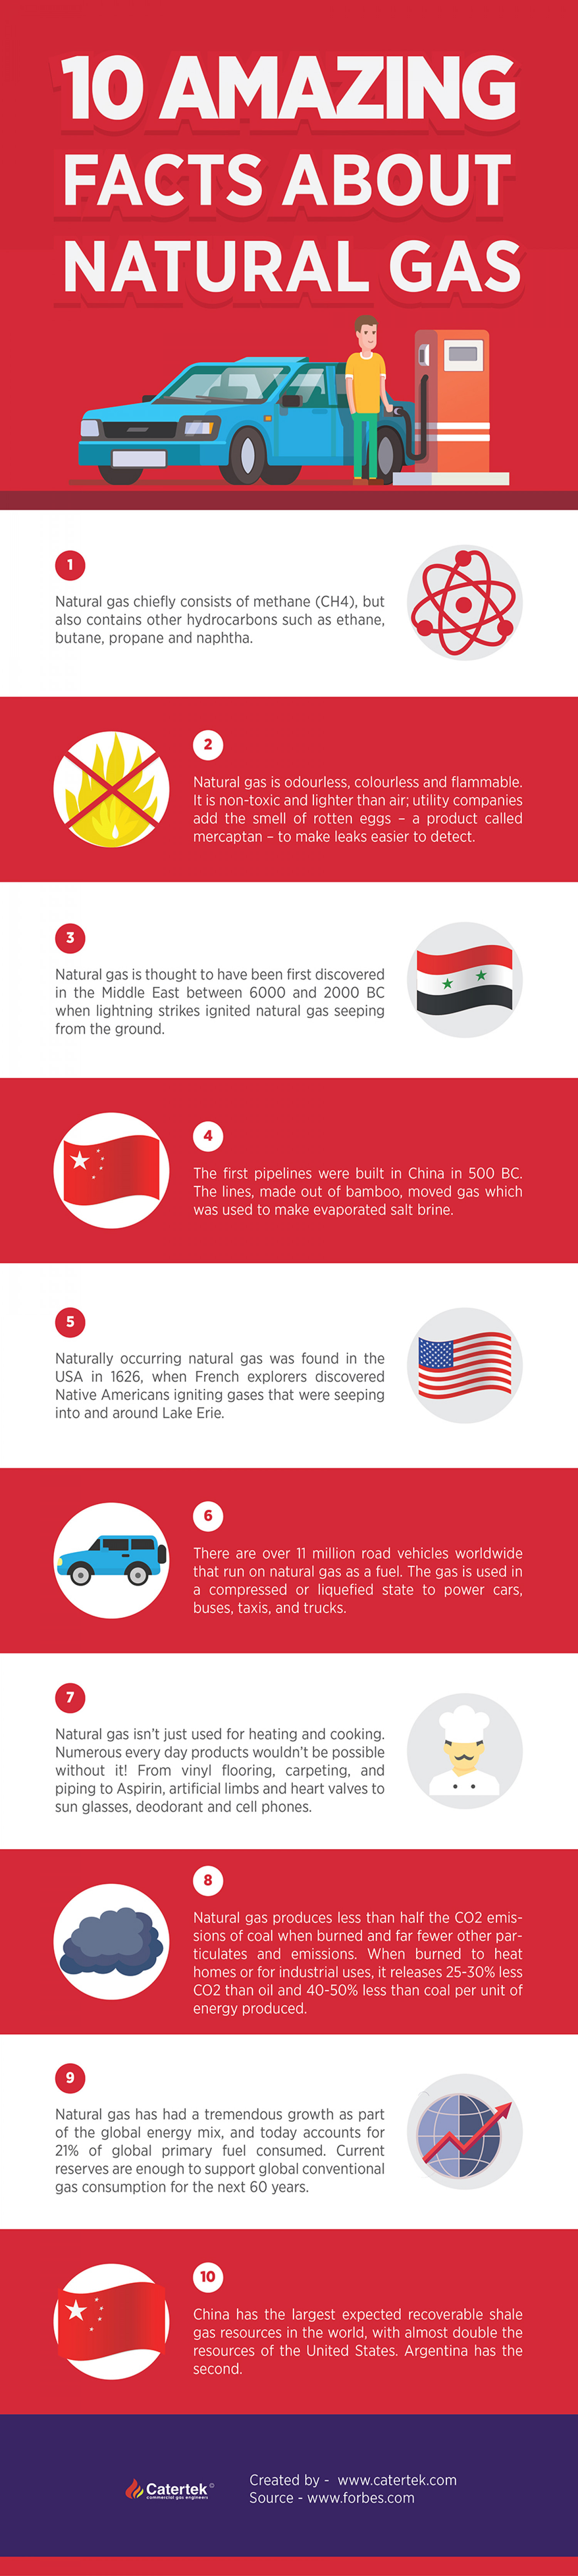 10 Amazing Facts About Natural Gas Infographic